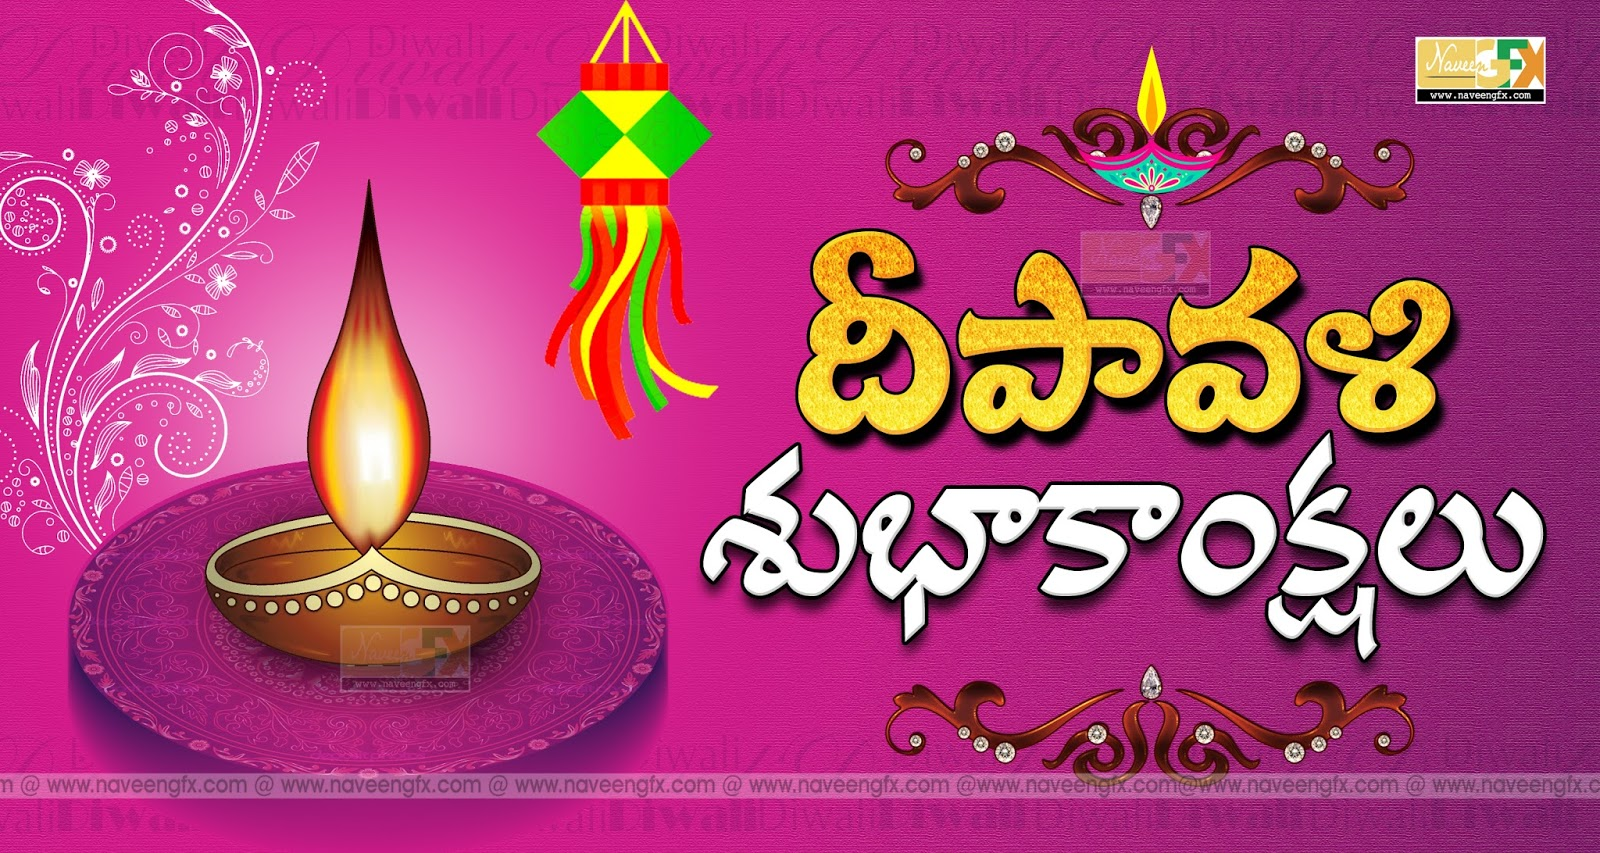 happy diwali wishes quotes in telugu language for facebook | naveengfx